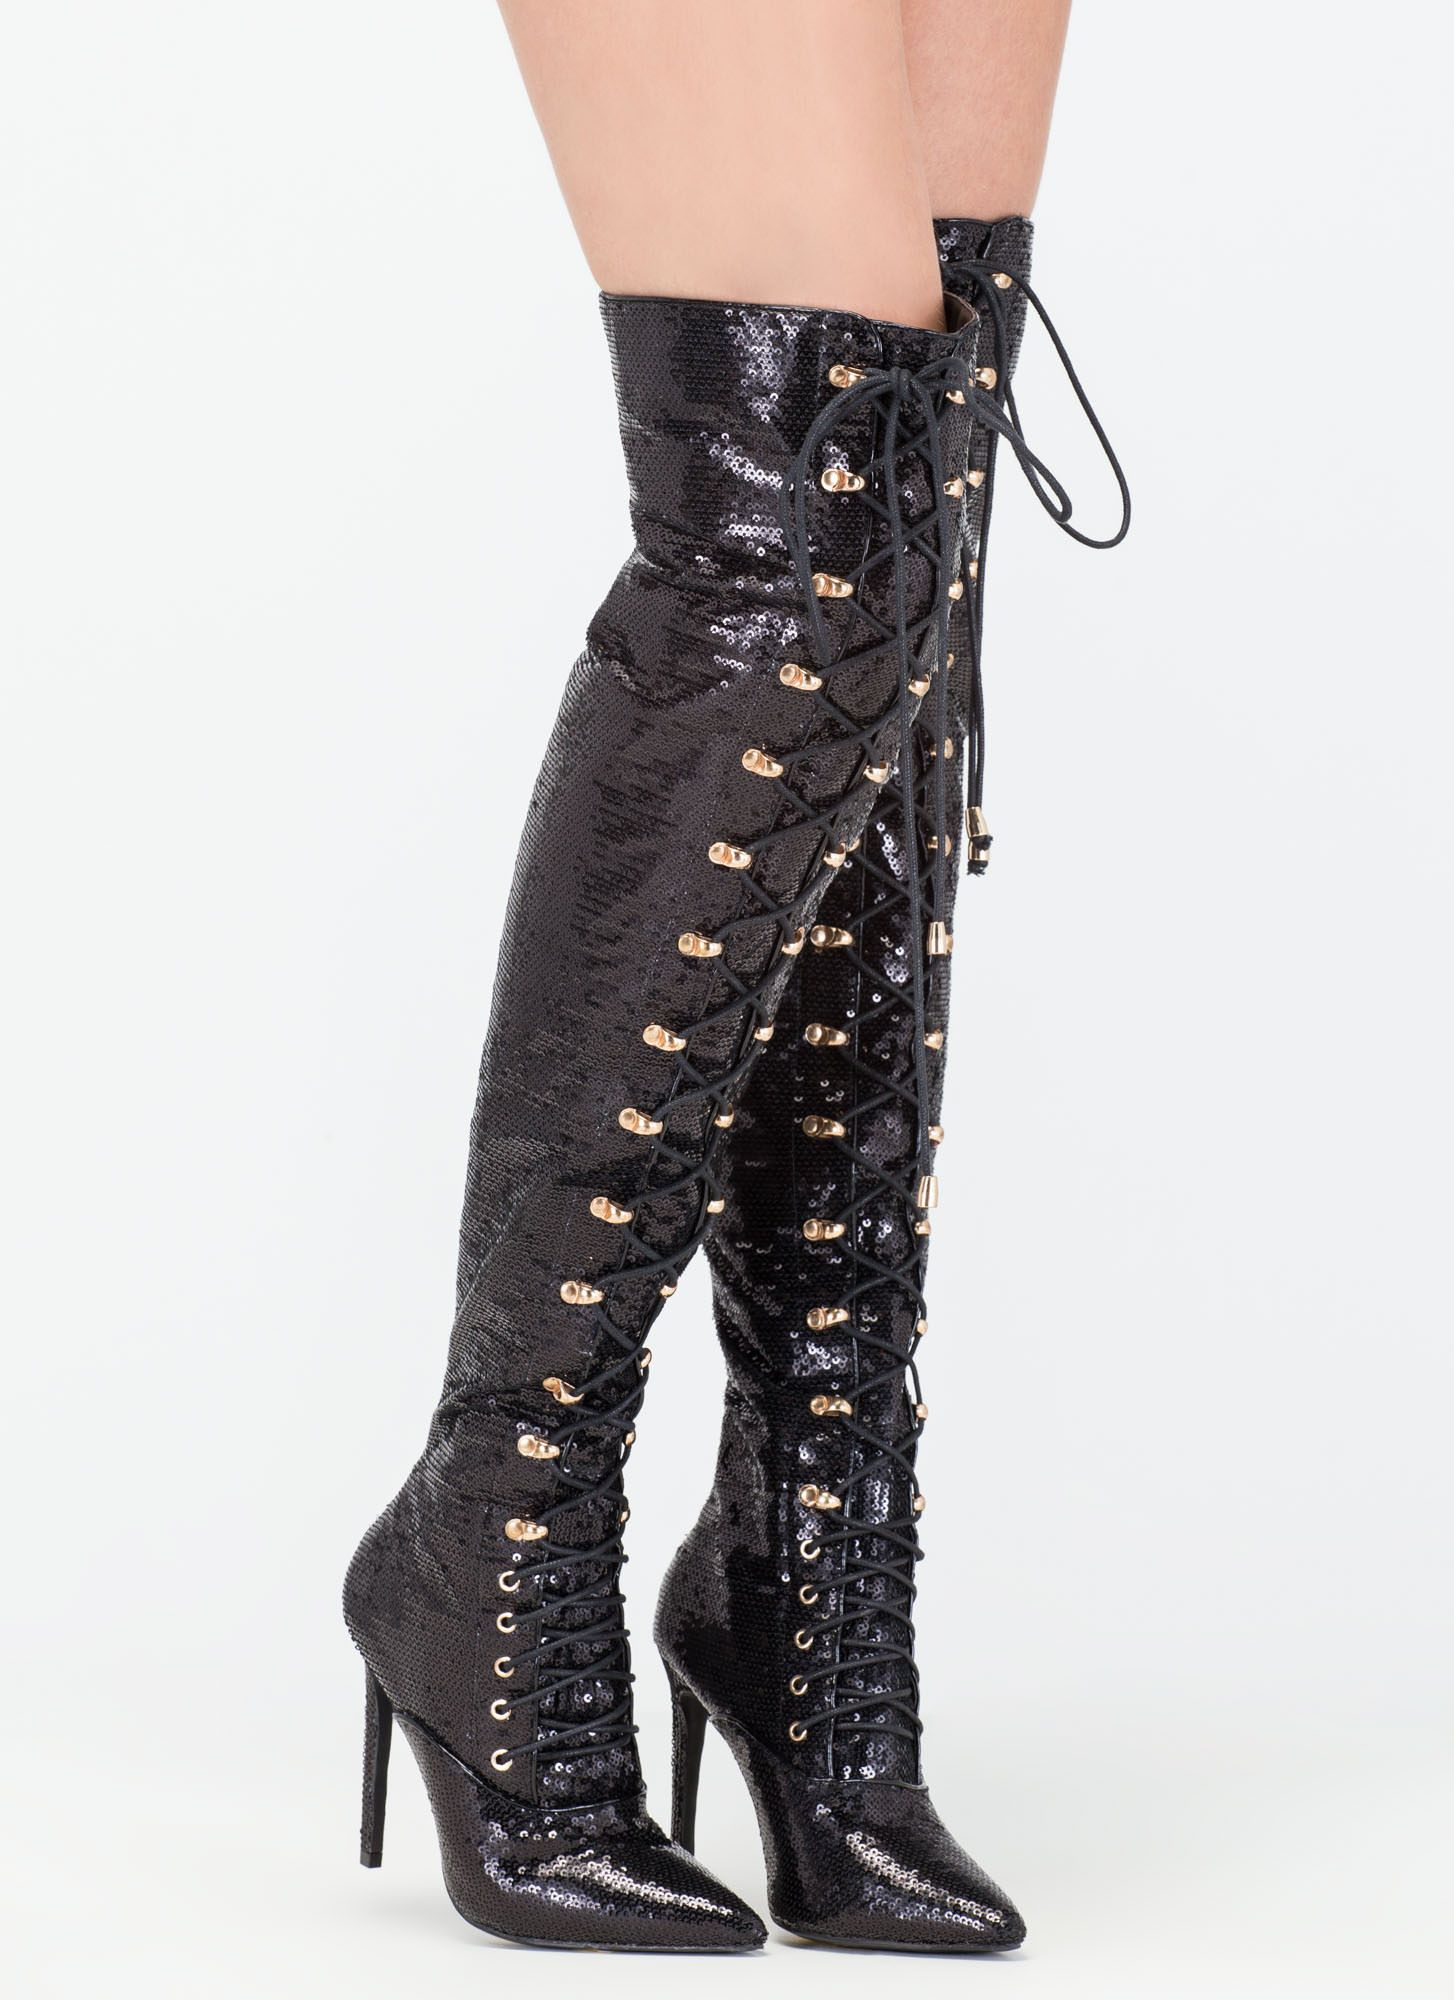 1d233ddc82 Walk Tall Sequin Thigh-High Boots | Shoe Lovers Paradise | Sequin ...